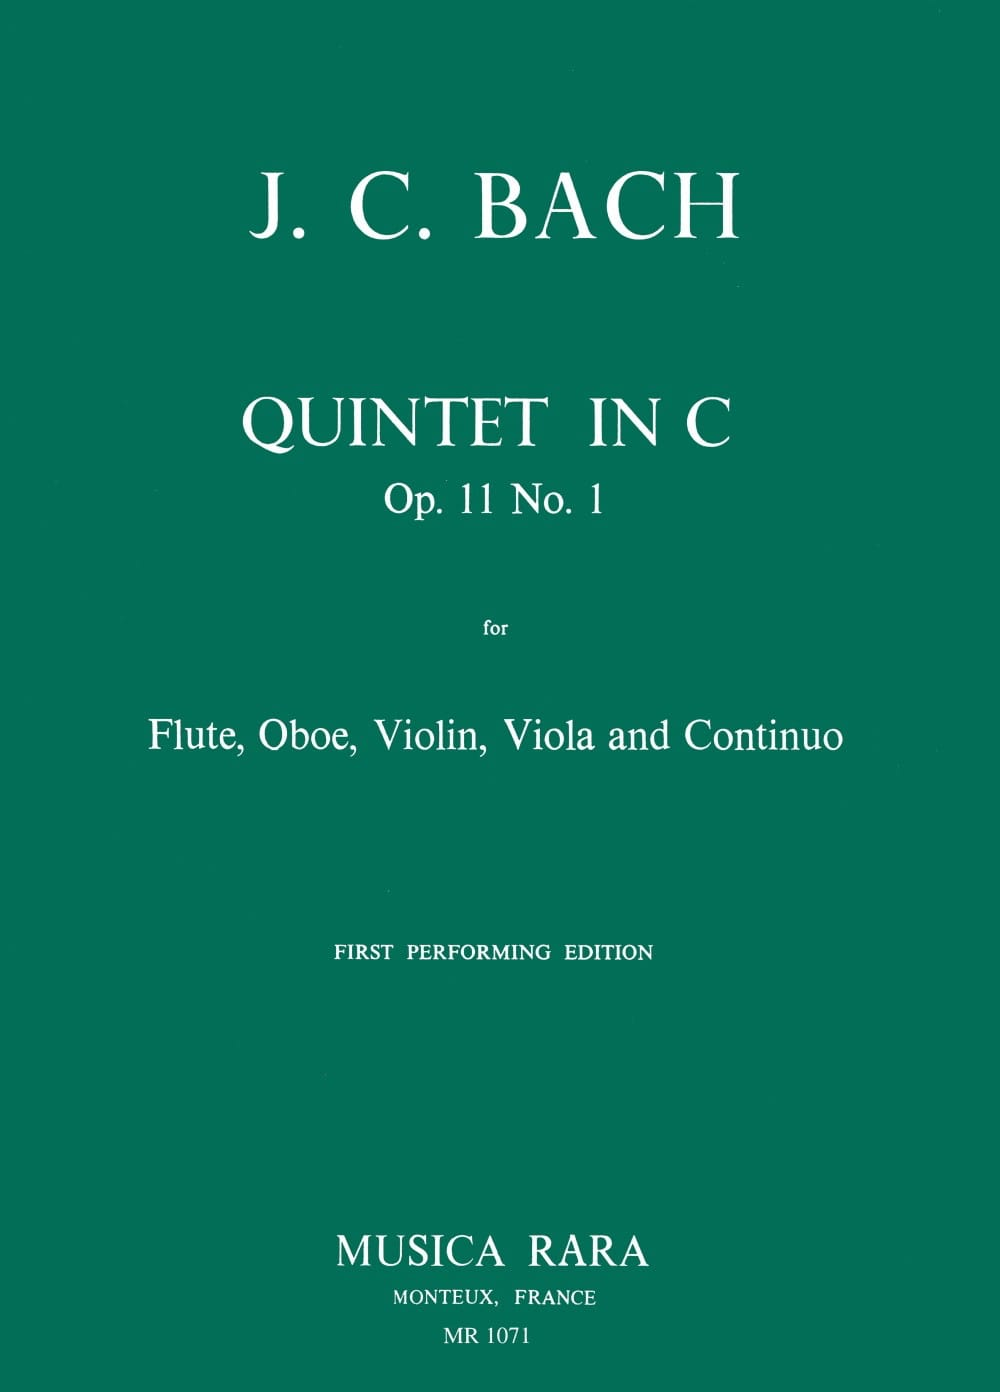 Johann Christian Bach - Quintet in C op. 11 n ° 1 - Flute oboe violin viola Bc - Partition - di-arezzo.co.uk